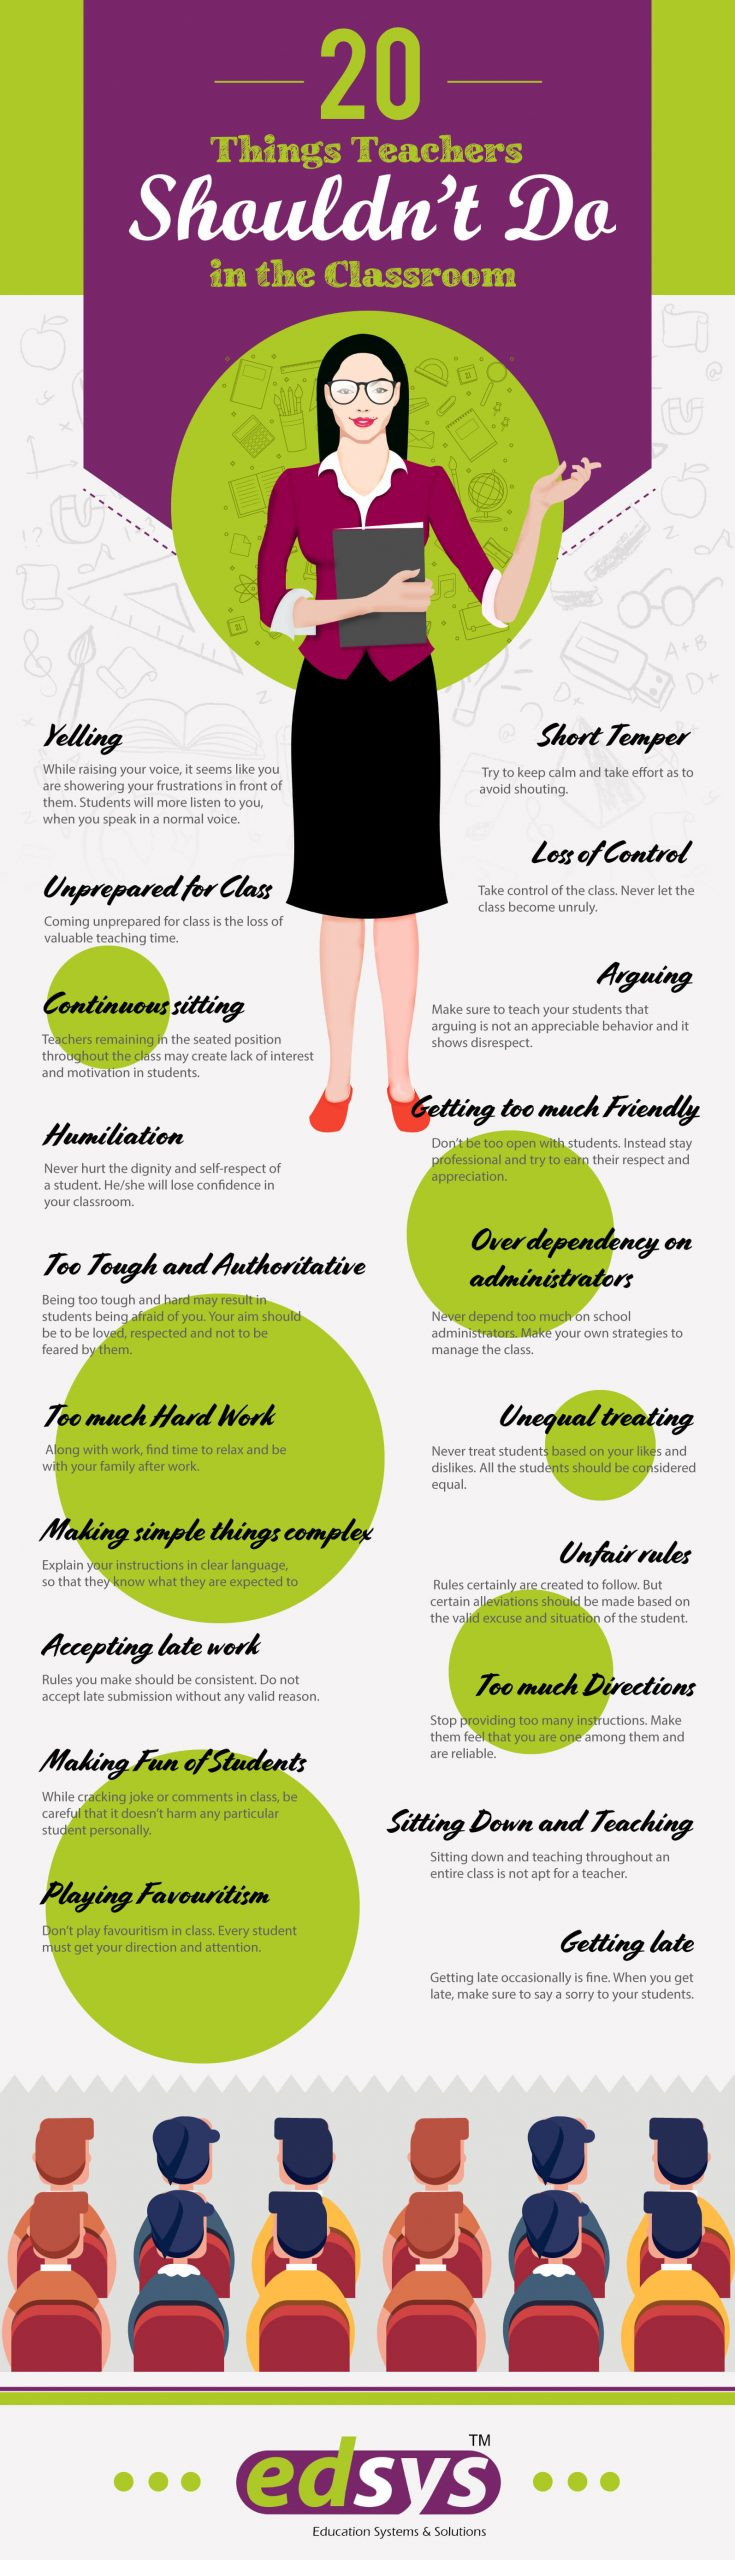 20-Things-Teachers-Shouldnt-Do-in-the-Classroom Infographic